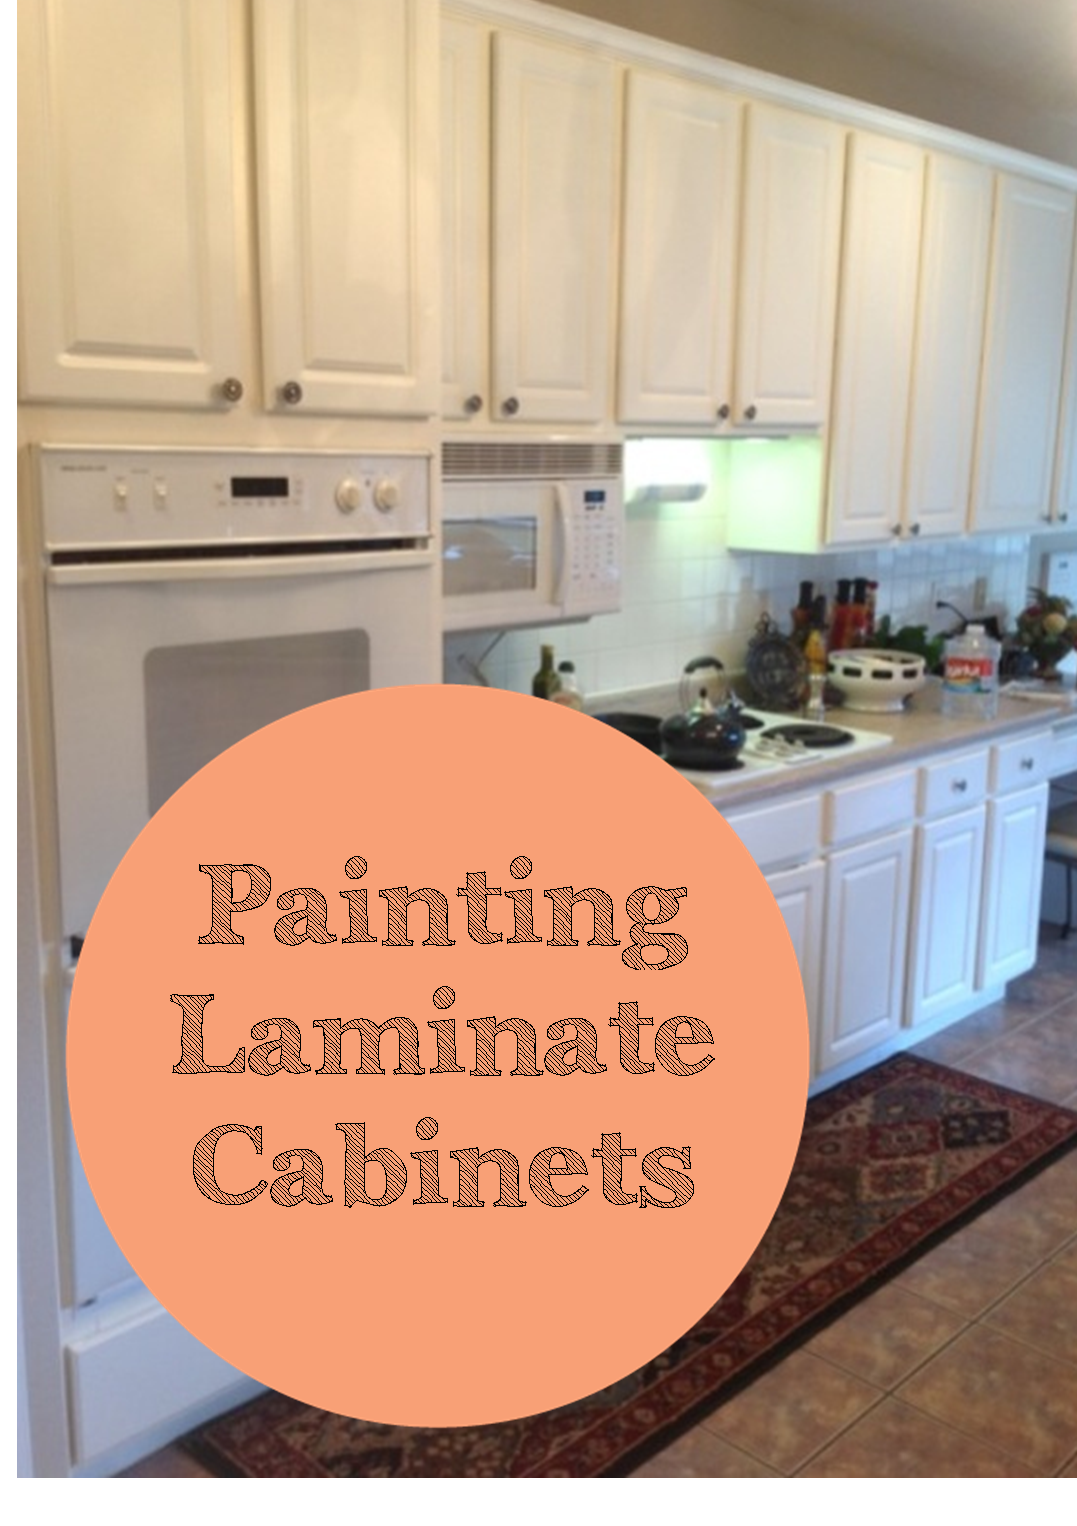 The ragged wren painting laminated cabinets for Kitchen cabinets laminate